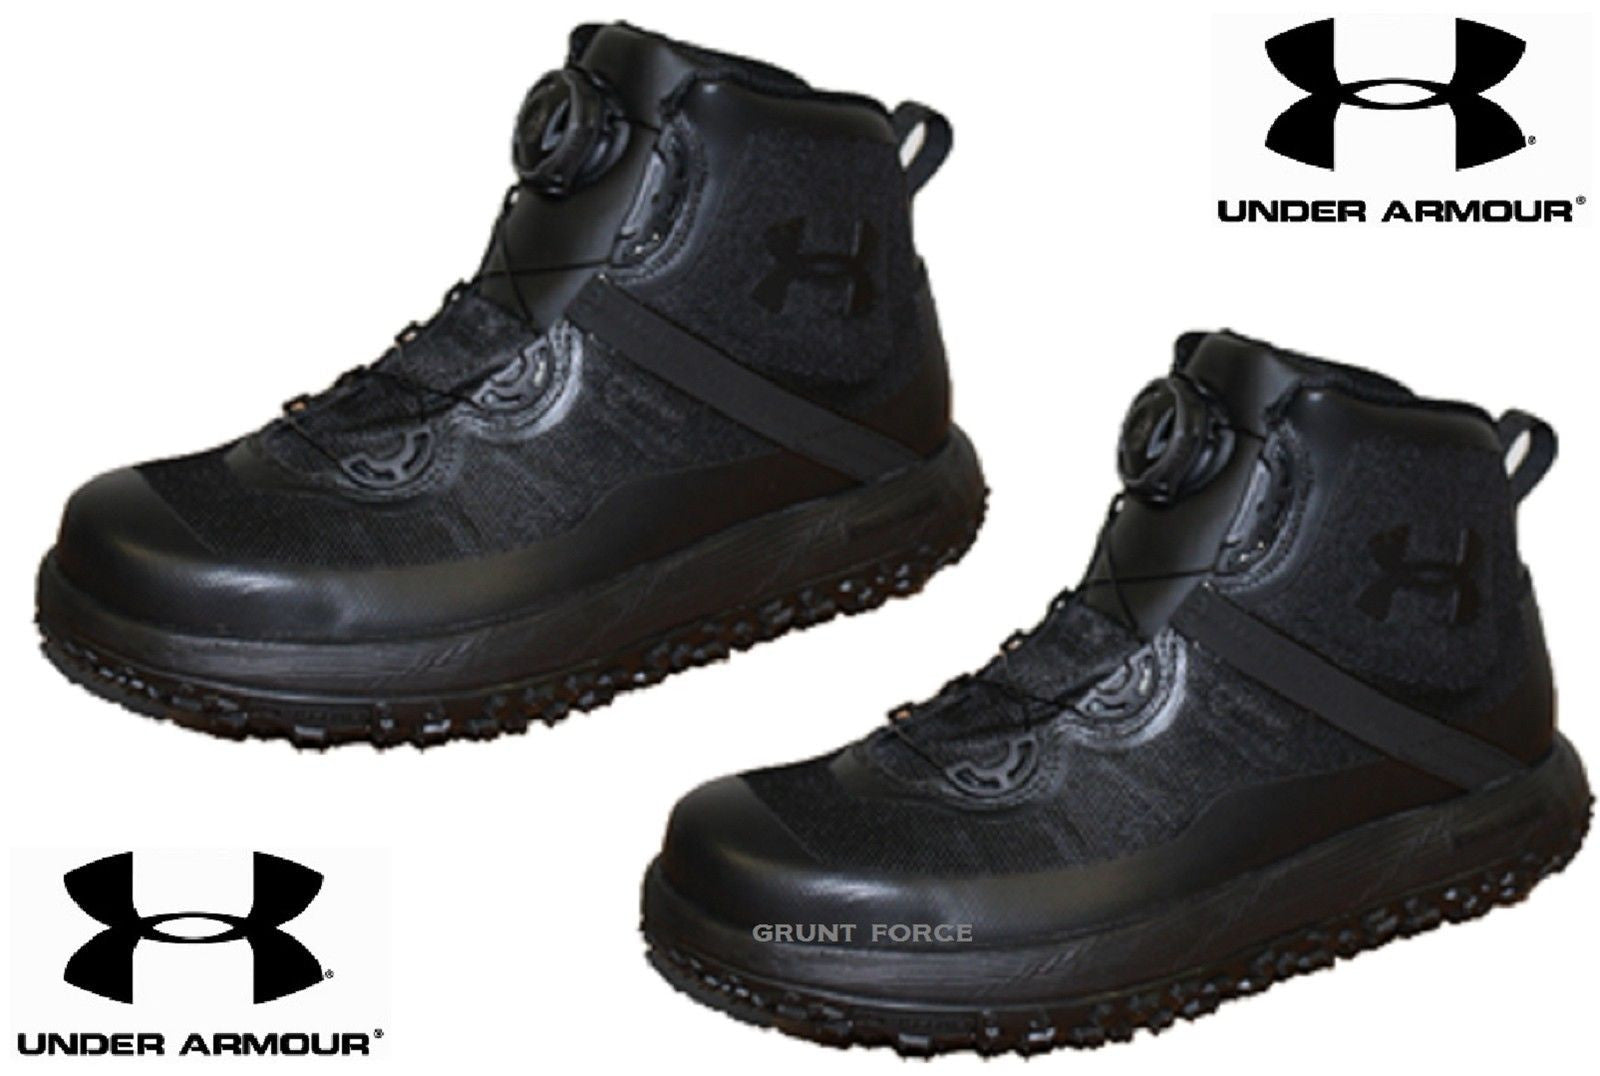 under armour boots fat tire